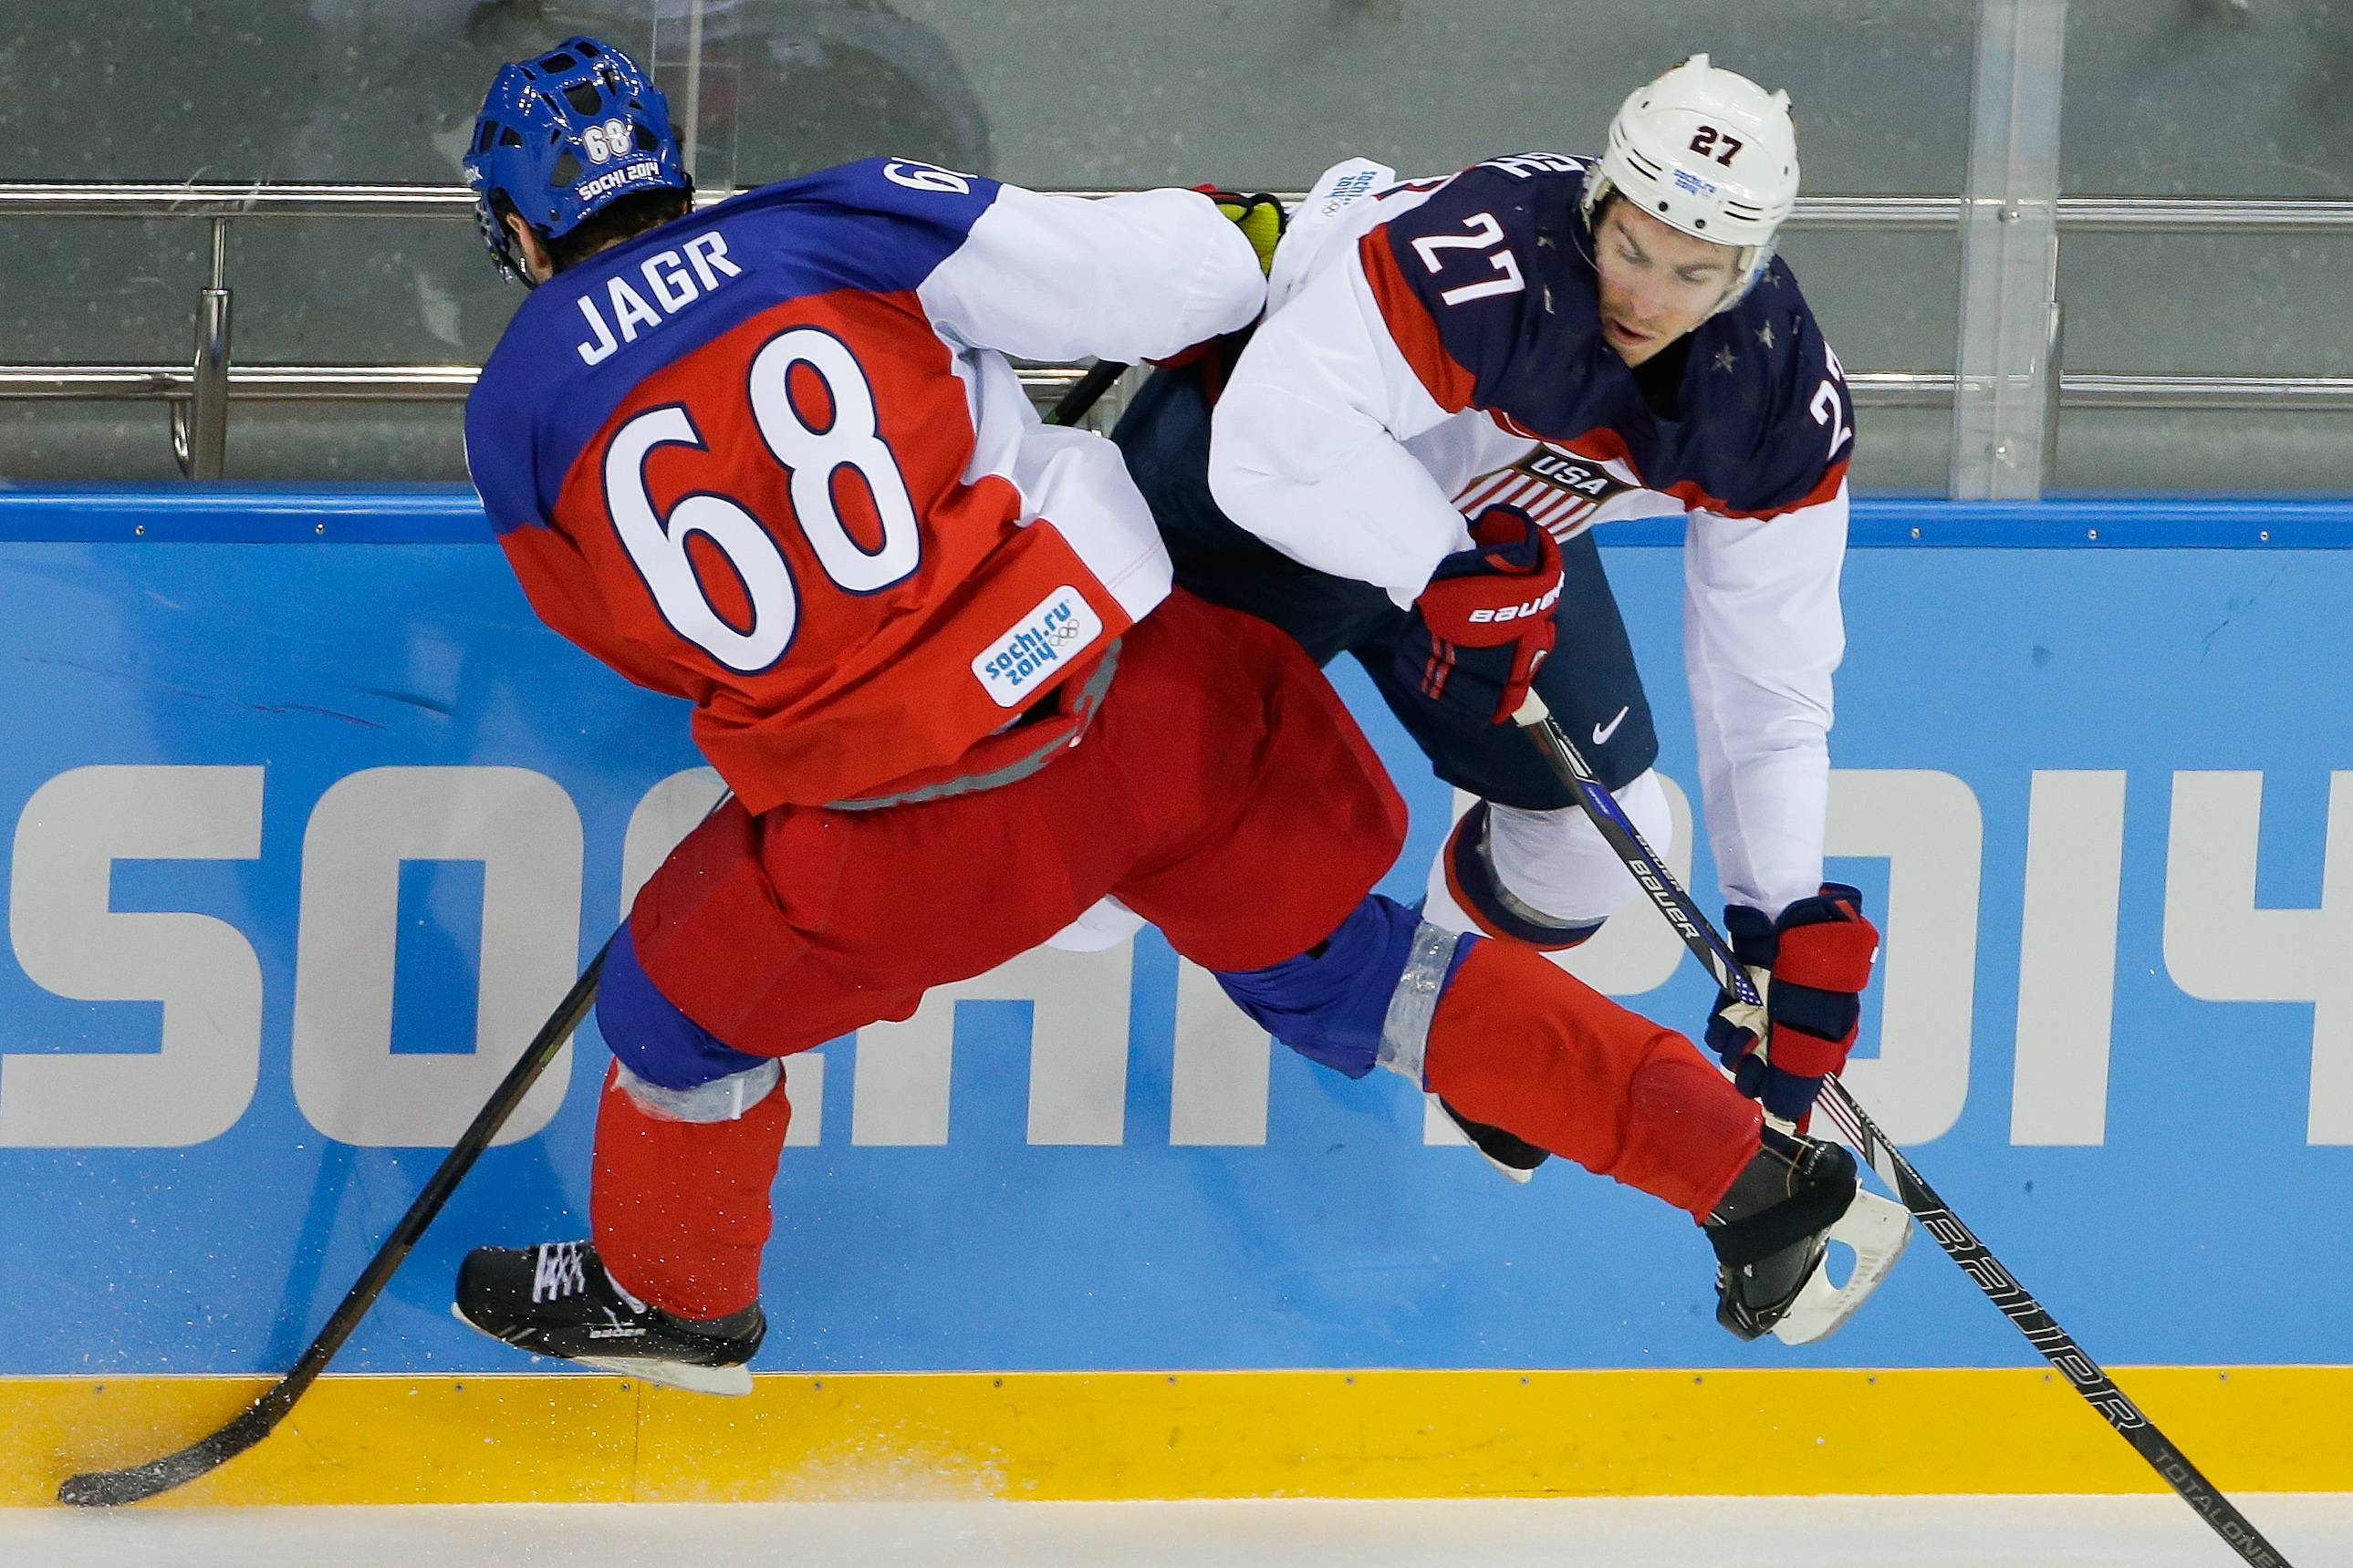 Czech Republic forward Jaromir Jagr and USA defenseman Ryan McDonagh collide during the first period of men's quarterfinal hockey game.